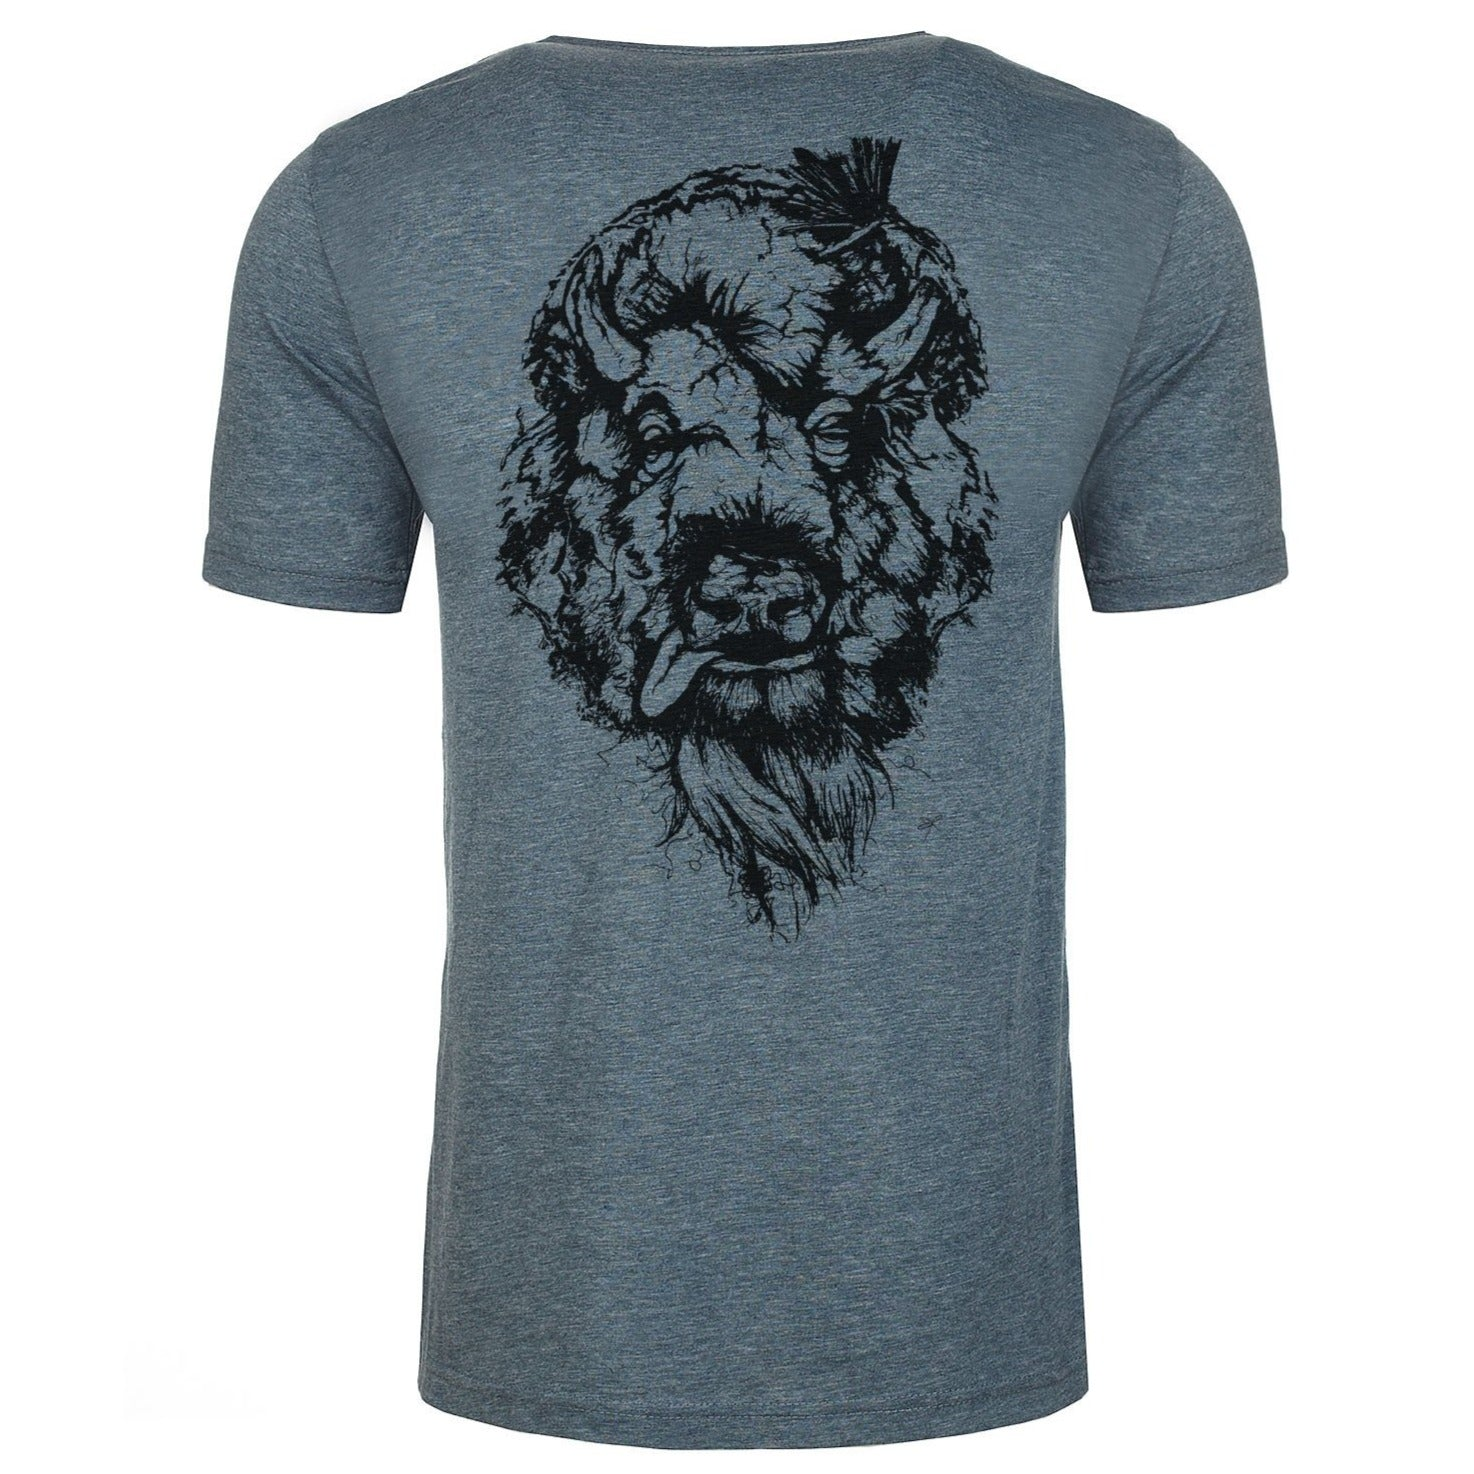 Tattered Buffalo Unisex T-Shirt